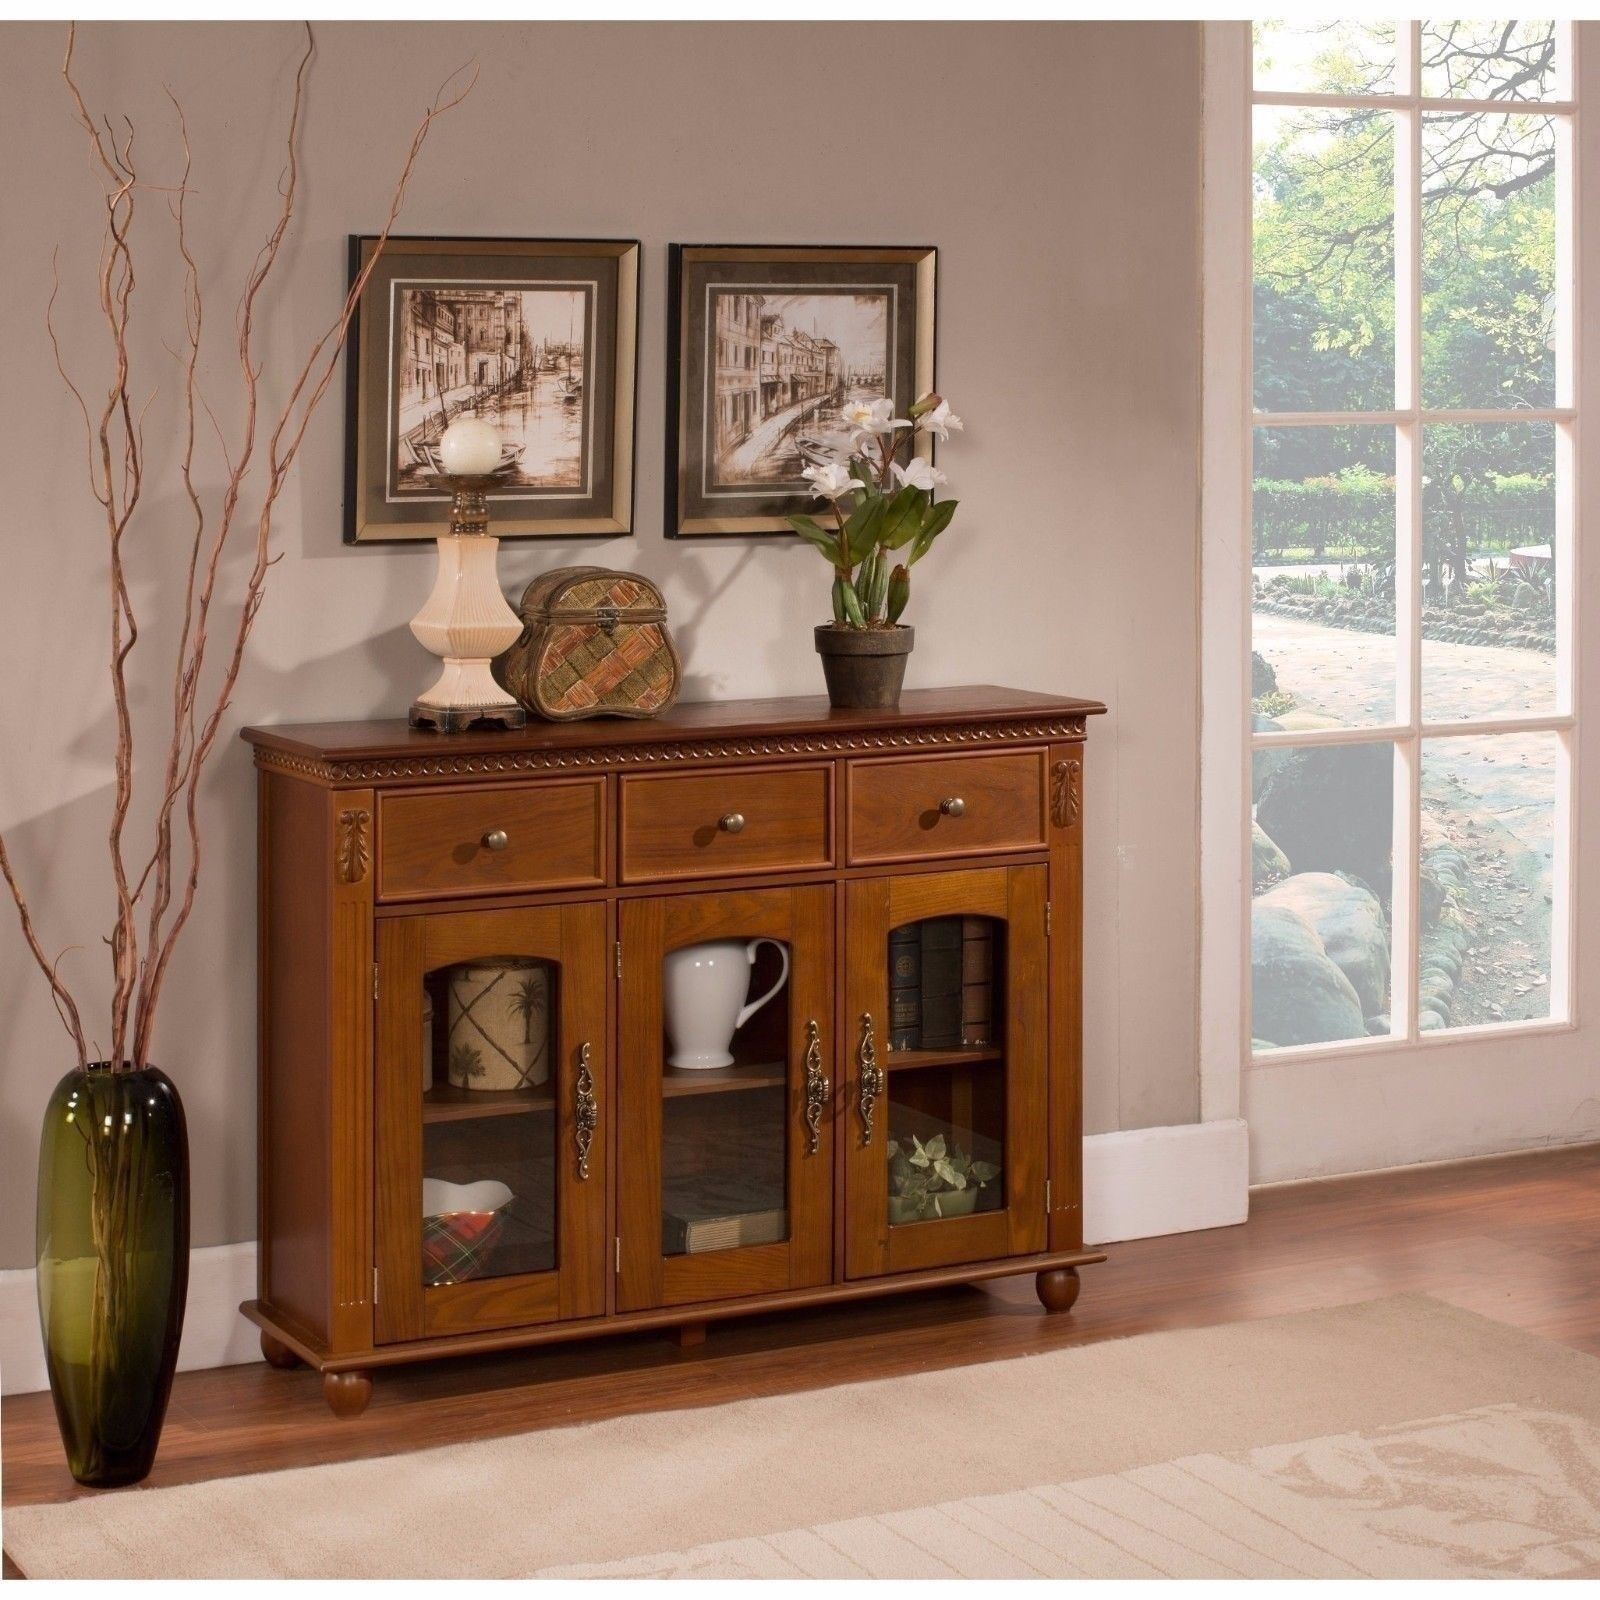 NEW Walnut Console Table Entryway Wood 3 Drawers Doors